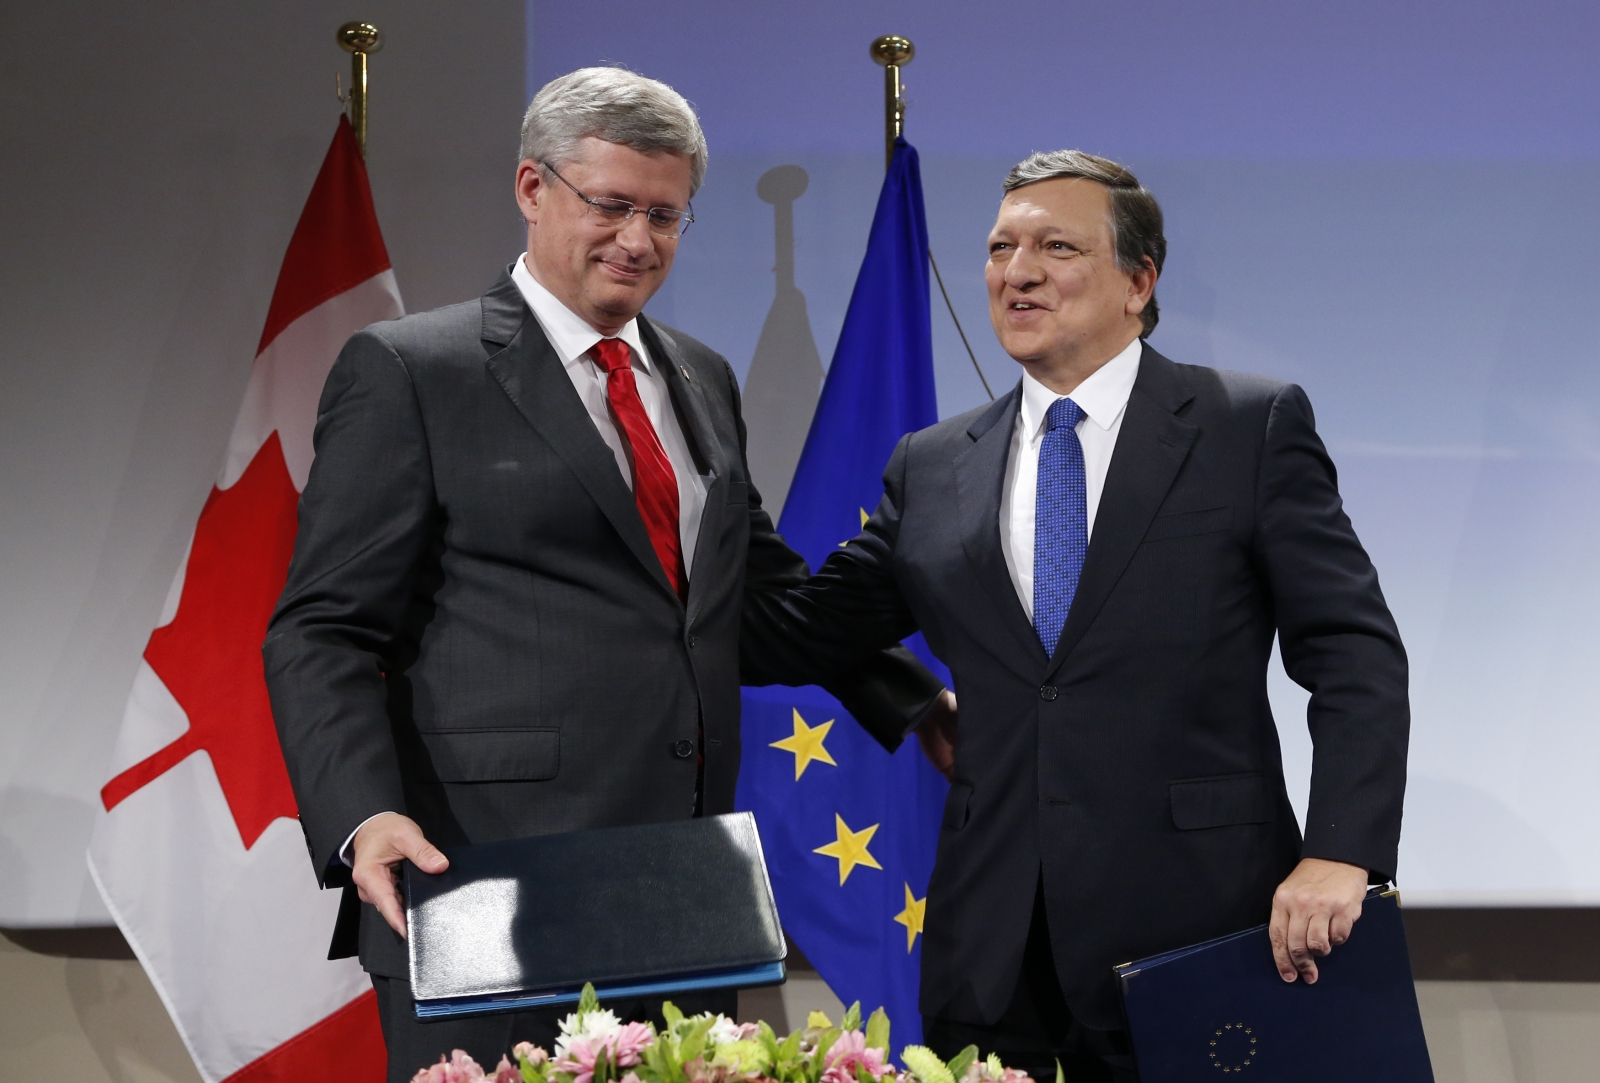 EU-Canada Free Trade Agreement